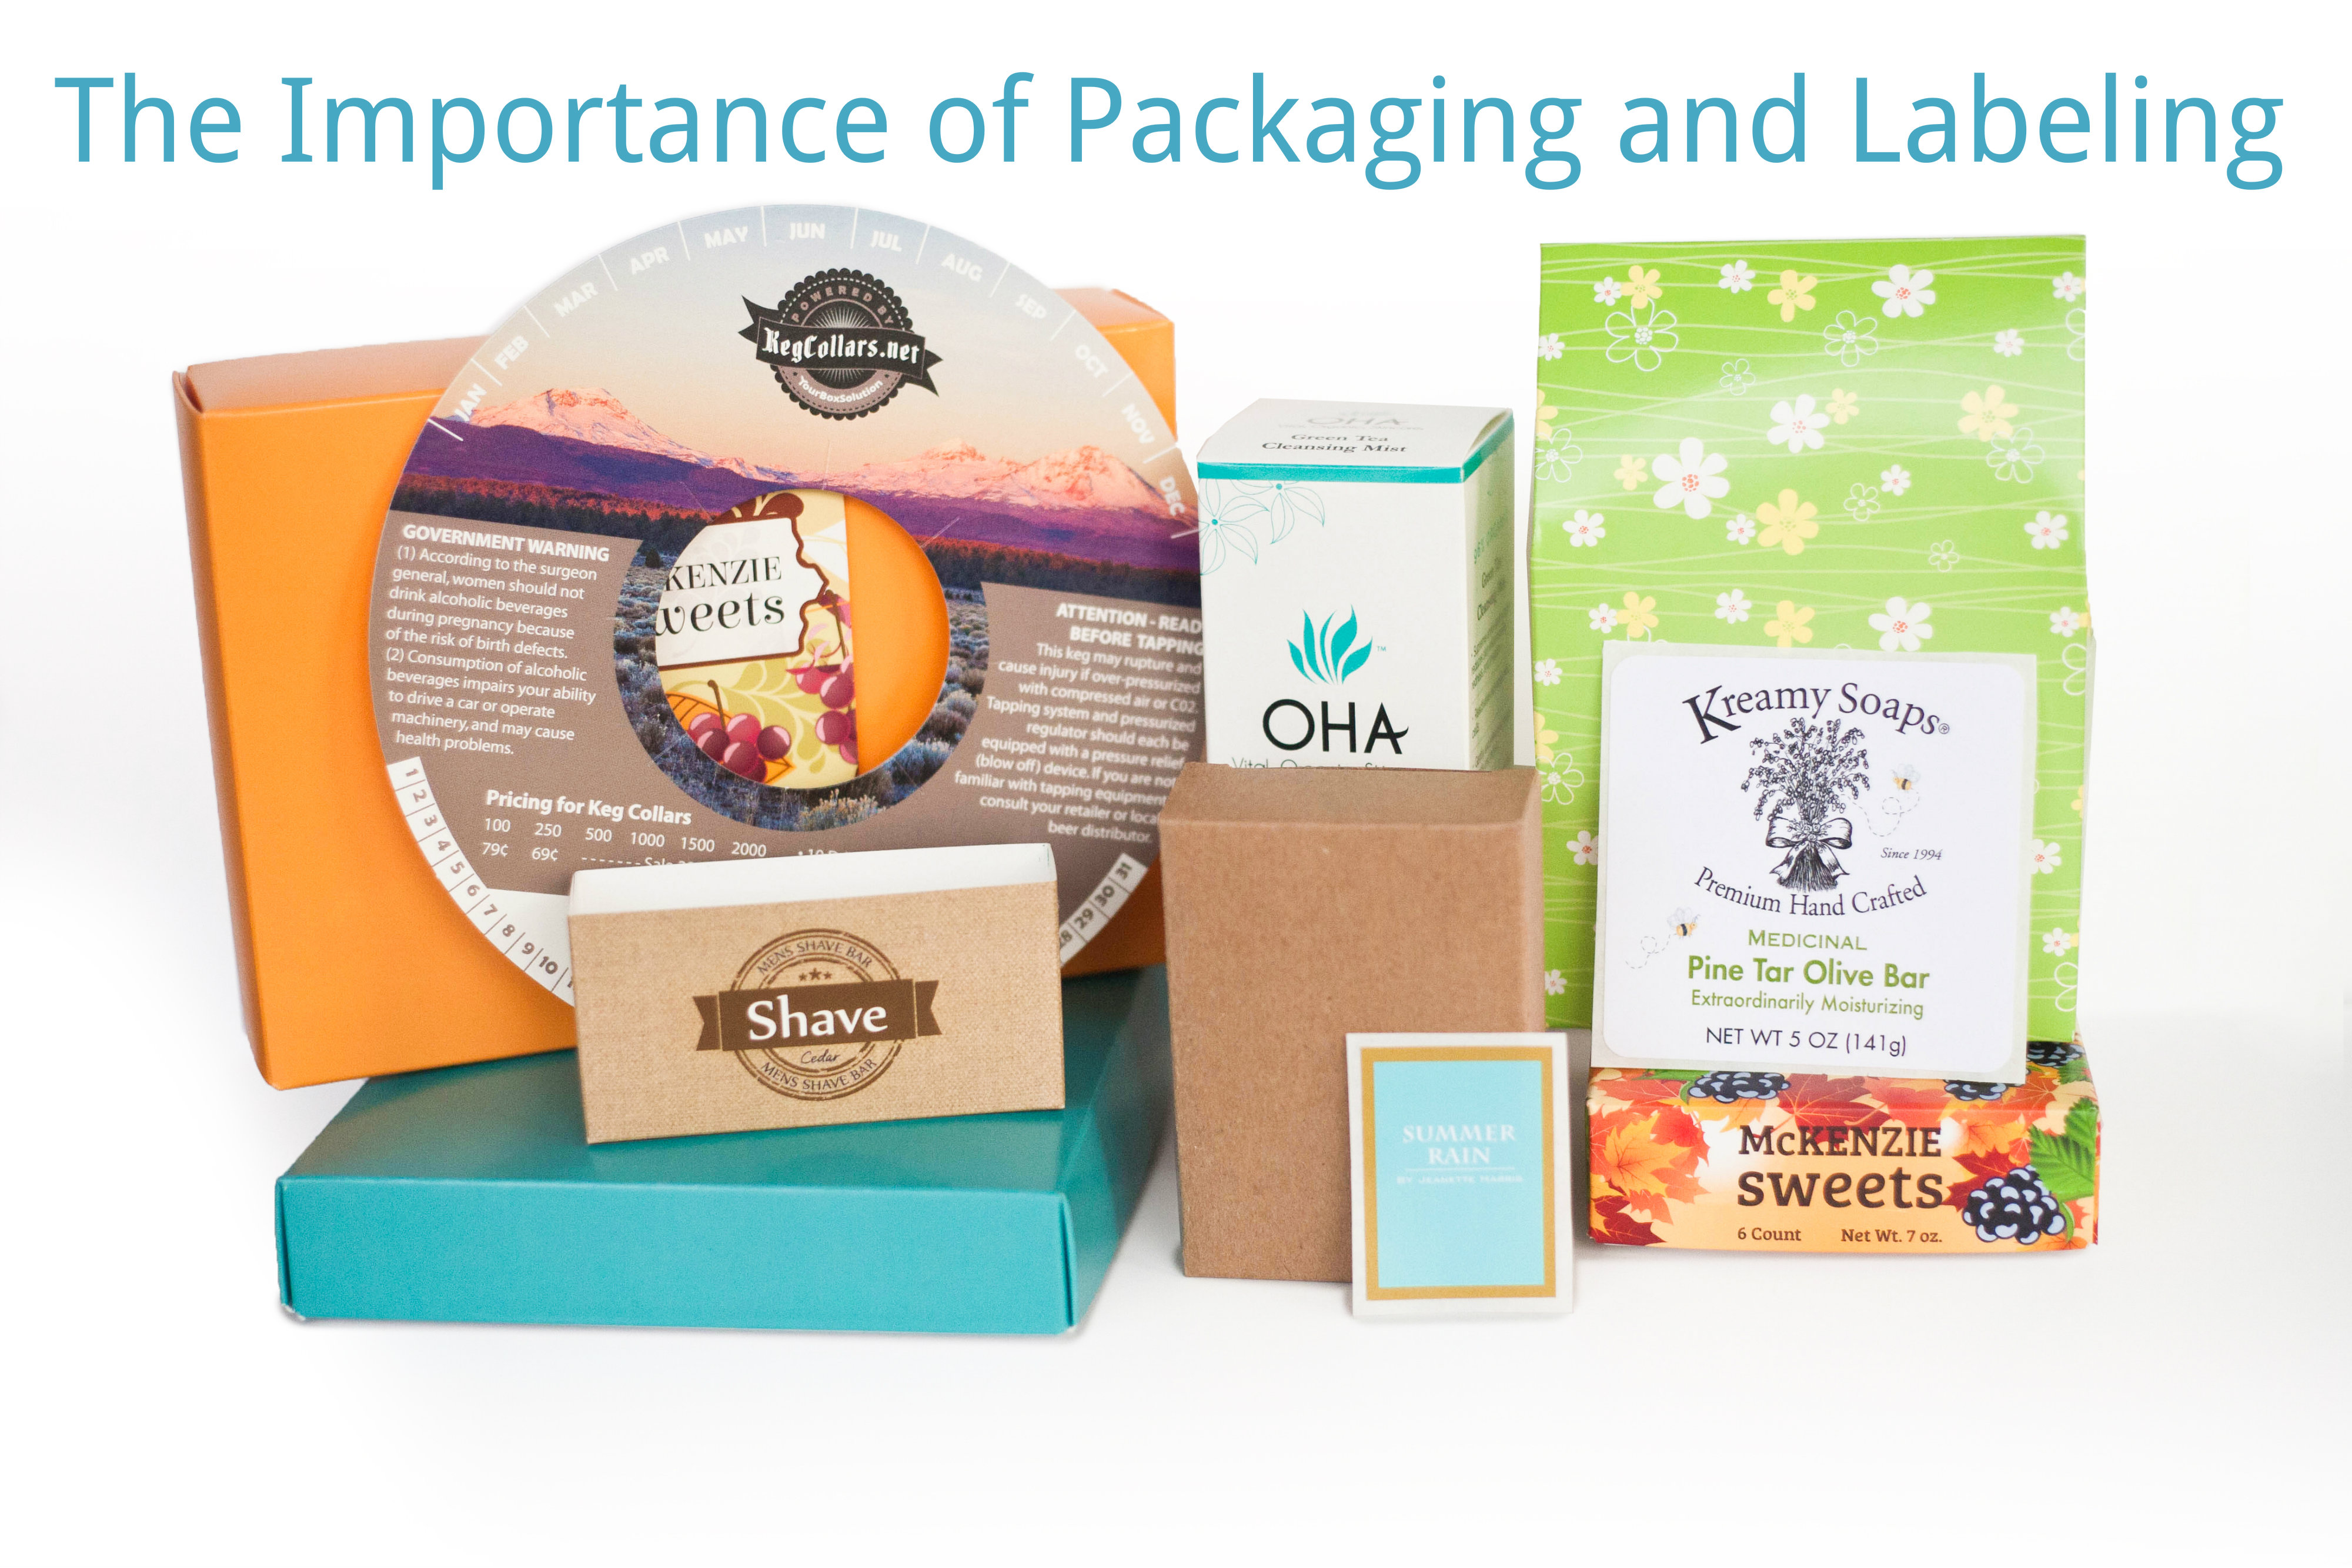 The Importance of Packaging and Labeling